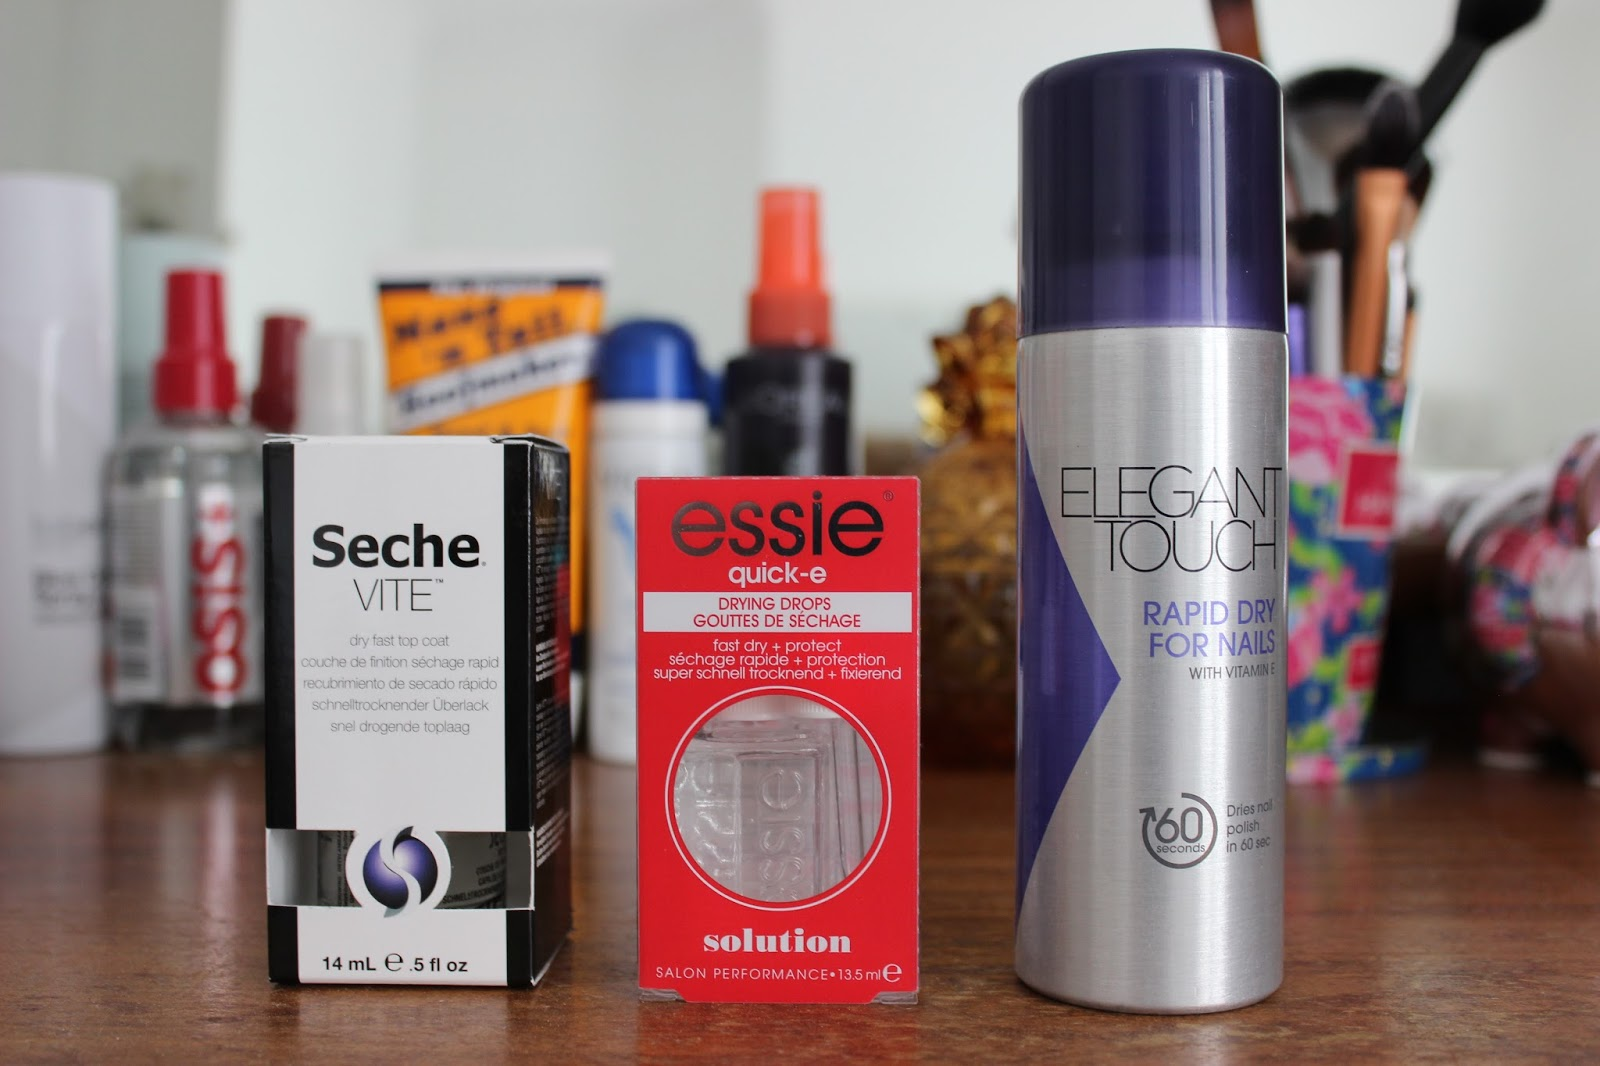 Seche vite top coat, Essie quick dry drops, Elegant touch rapid dry spray